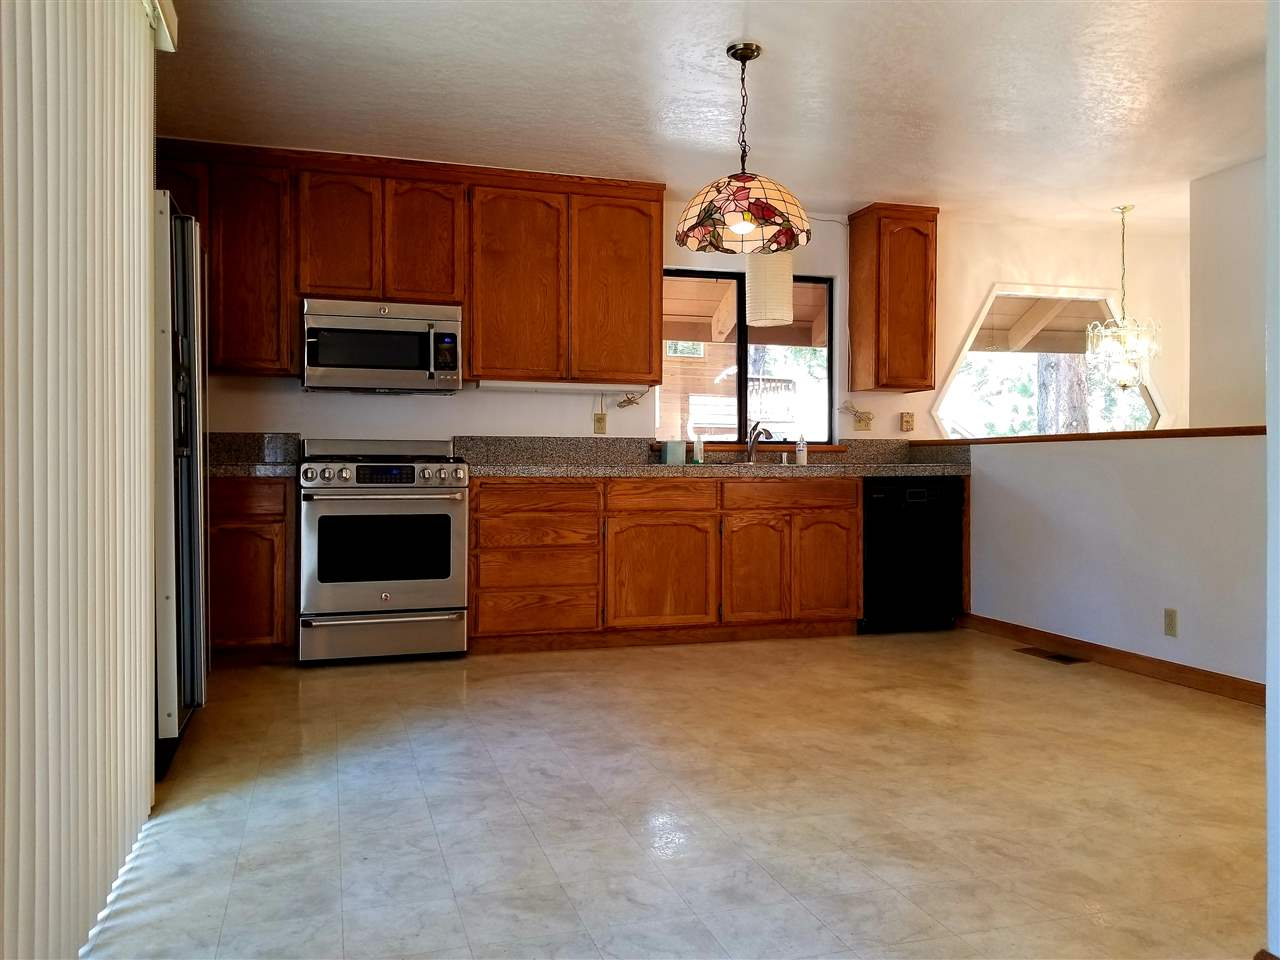 Additional photo for property listing at 758 JUDITH COURT Incline Village, Nevada 89451 Estados Unidos